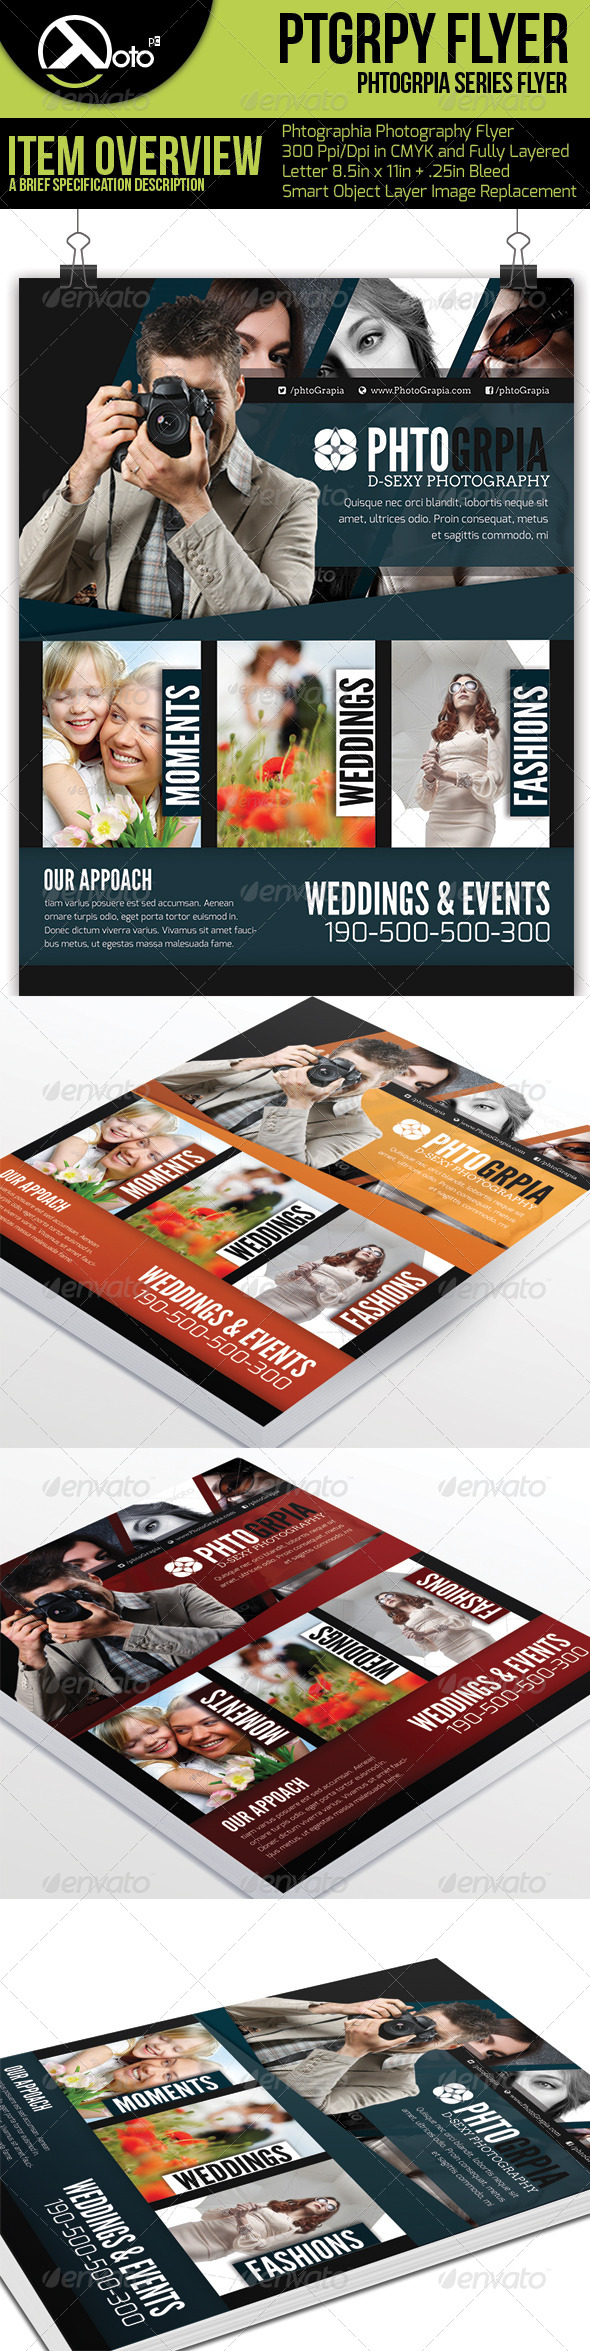 Photographia Photography Service Flyer - Flyers Print Templates